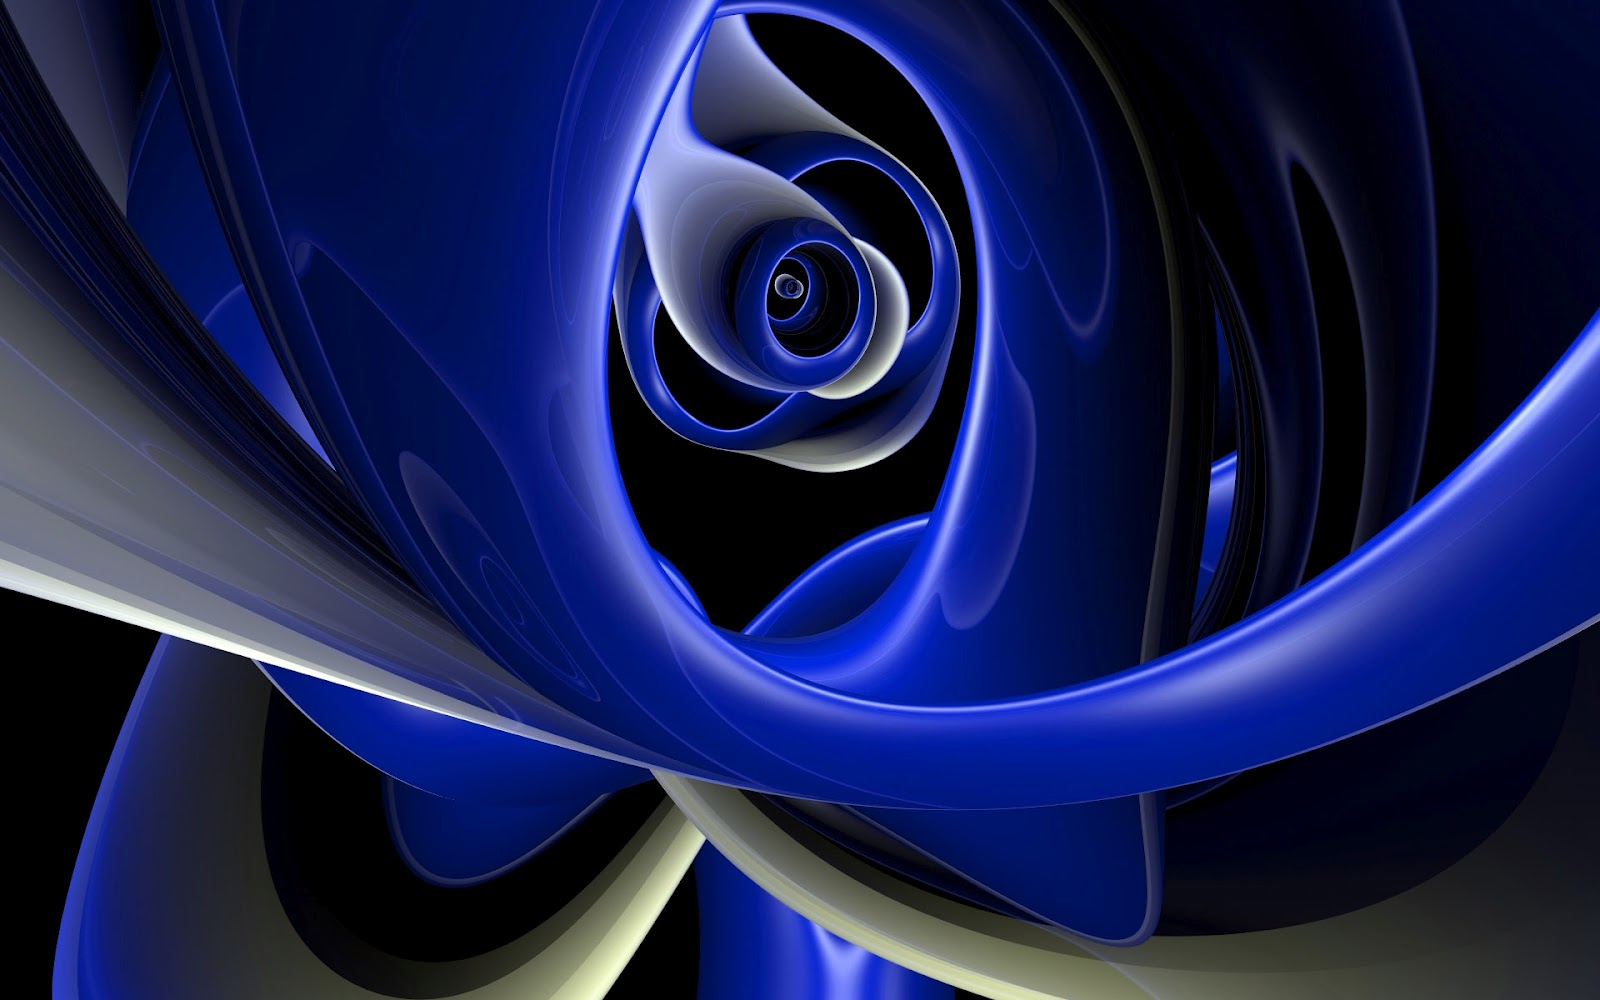 http://1.bp.blogspot.com/-aa-S13jUx3Y/T9CSufBUZ2I/AAAAAAAAAP0/MIdYBfT_YZA/s1600/Abstract+3D+Wallpaper+%252819%2529.jpg